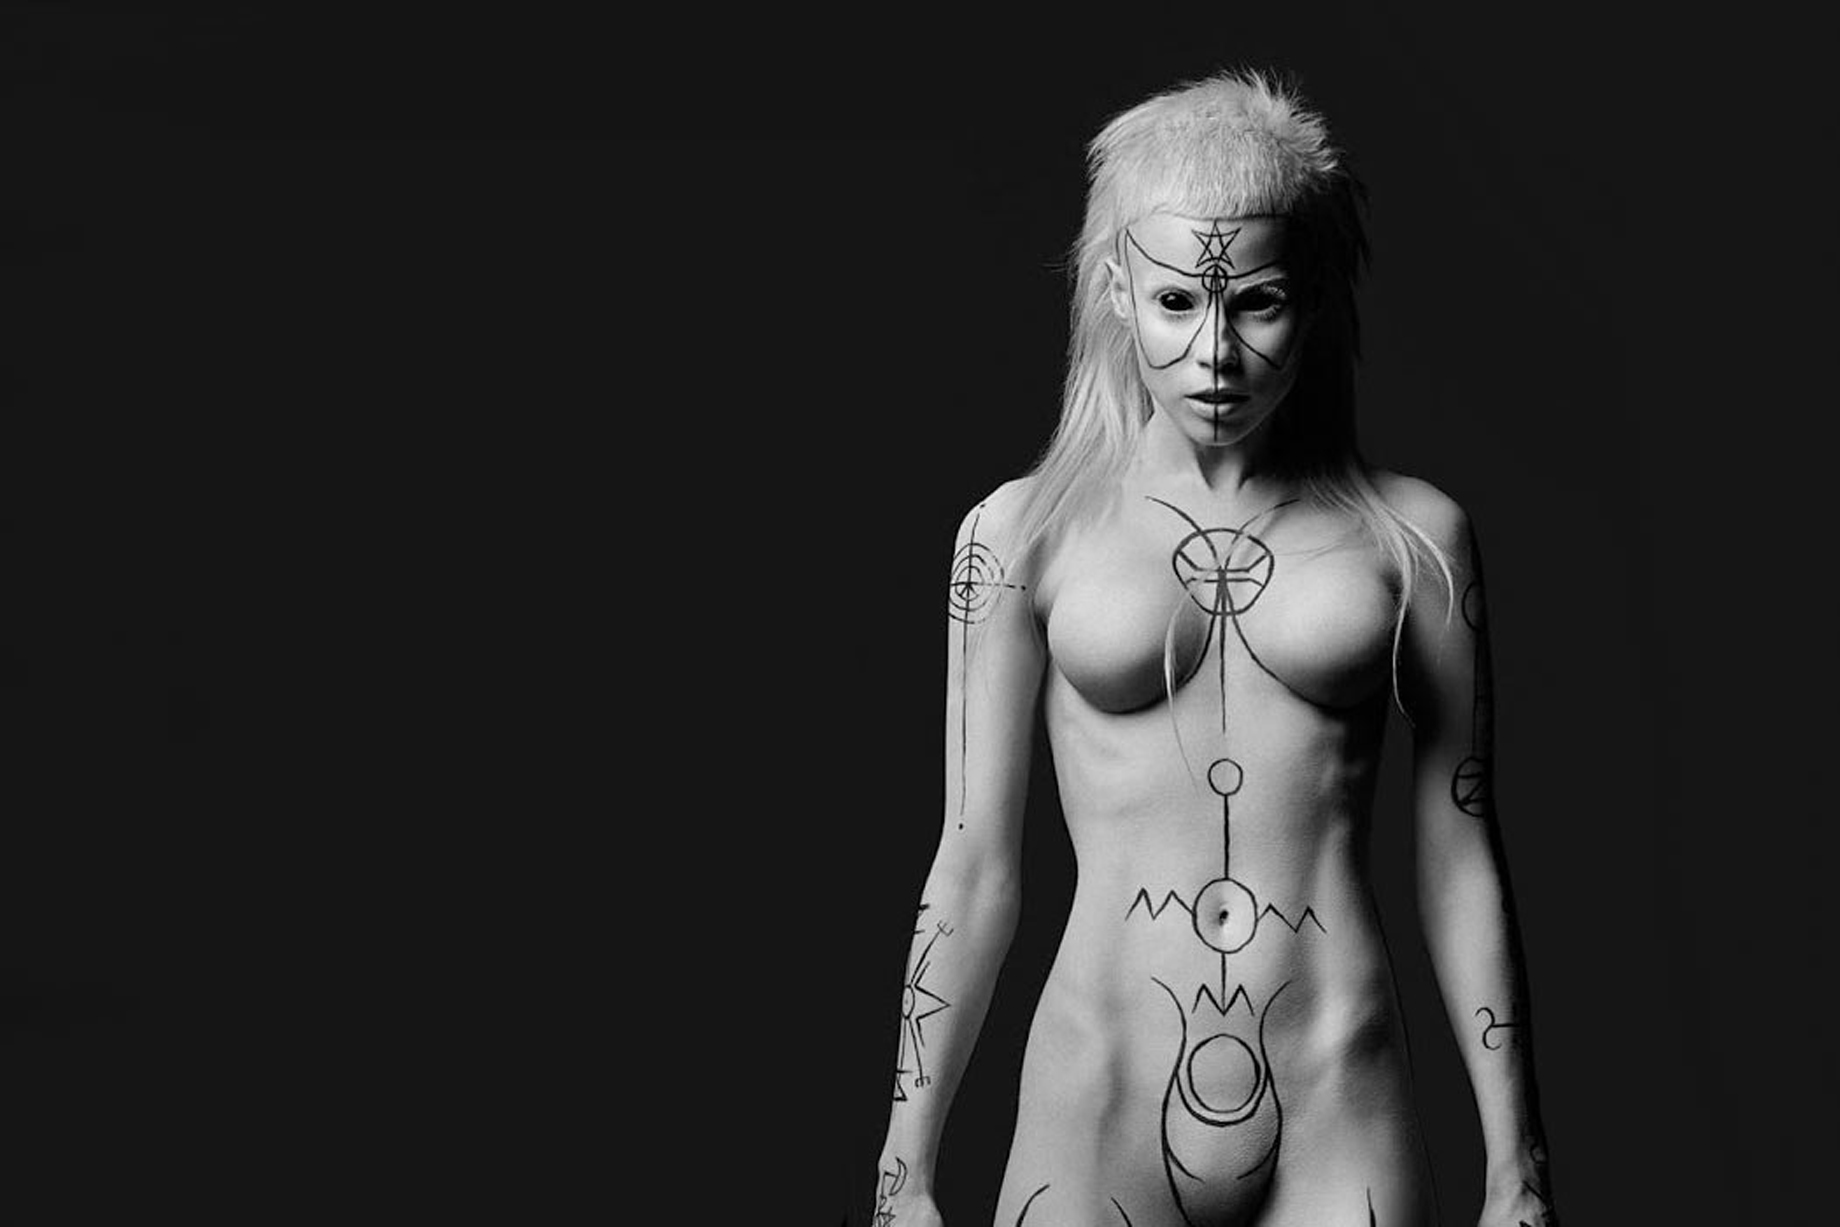 https://faustuscrow.files.wordpress.com/2015/01/goetia_girls_yolandi_-visser_succubus_donker-mag.jpg